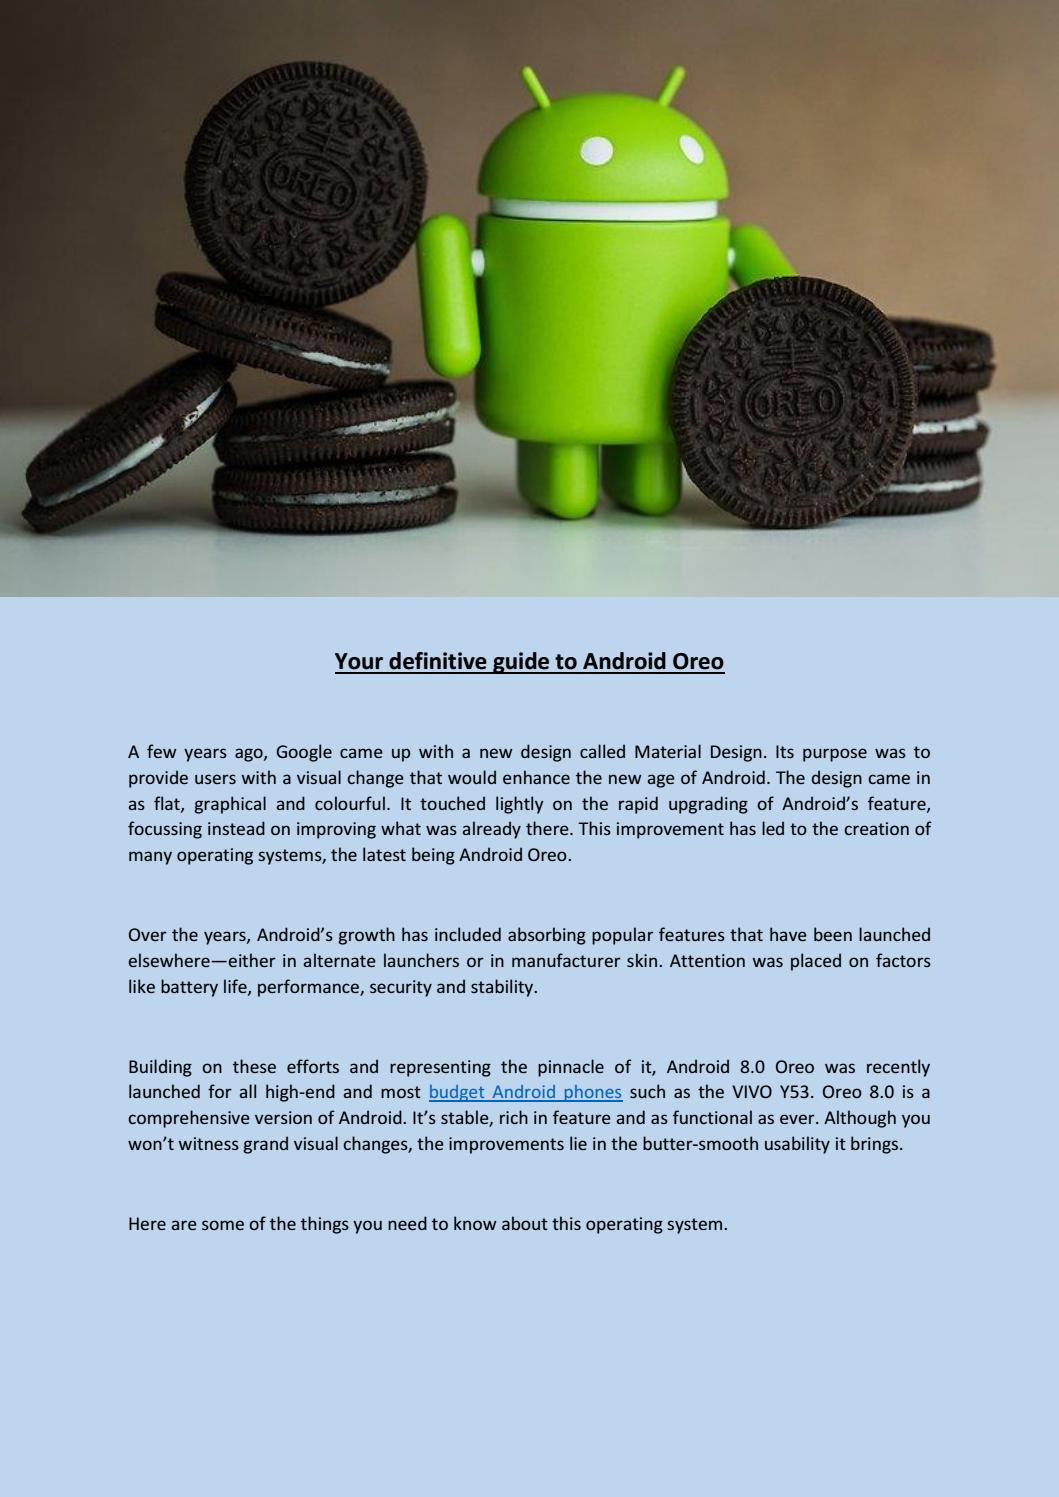 Your definitive guide to android oreo by sam pepper - issuu